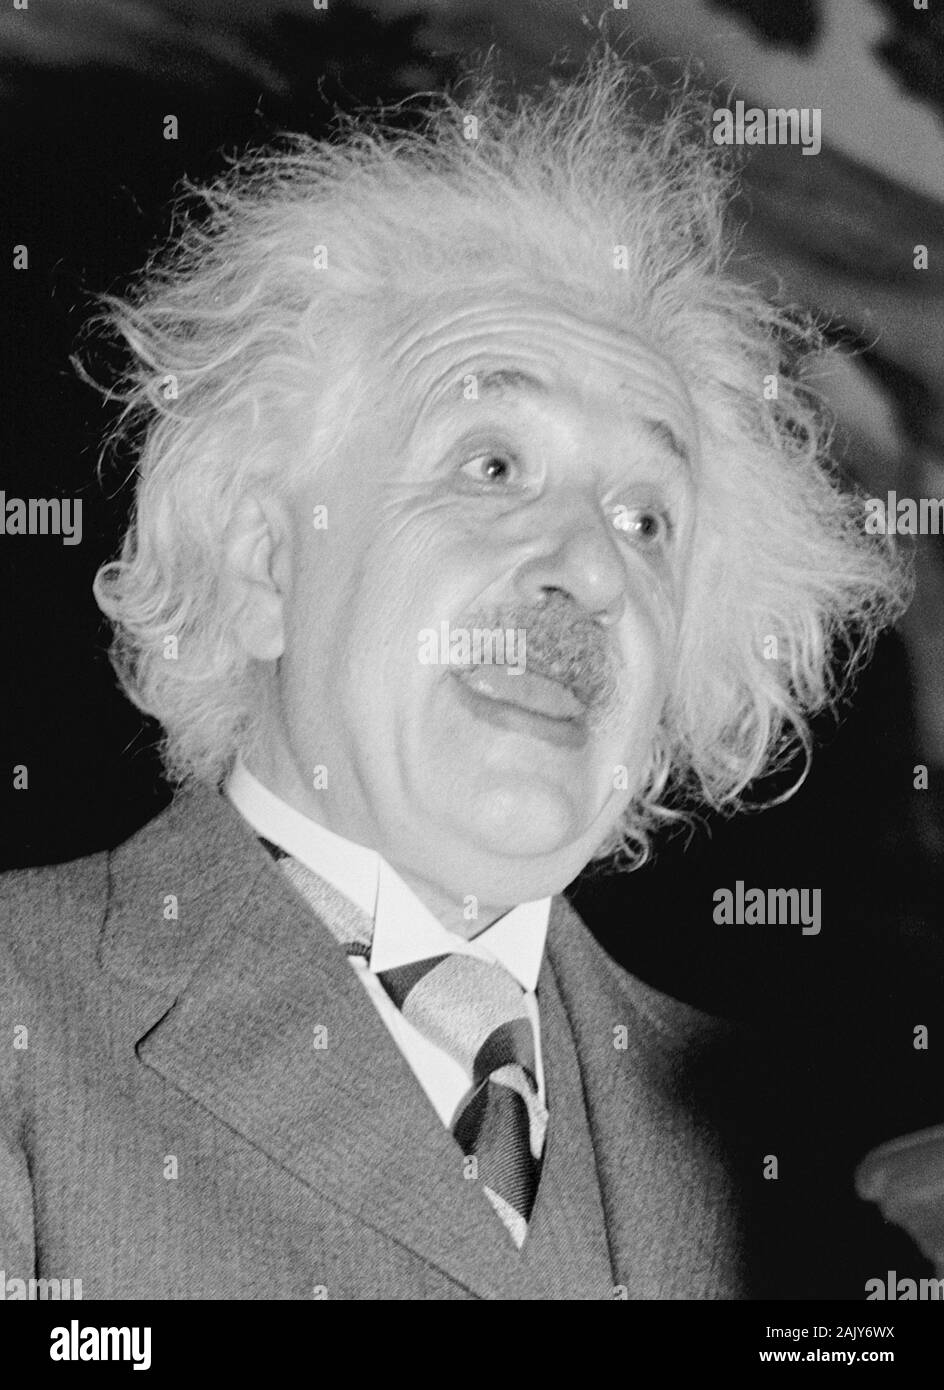 Vintage photo of theoretical physicist Albert Einstein (1879 – 1955) giving a speech at the Eighth American Scientific Congress in Washington DC in May 1940. Photo by Harris & Ewing. Stock Photo